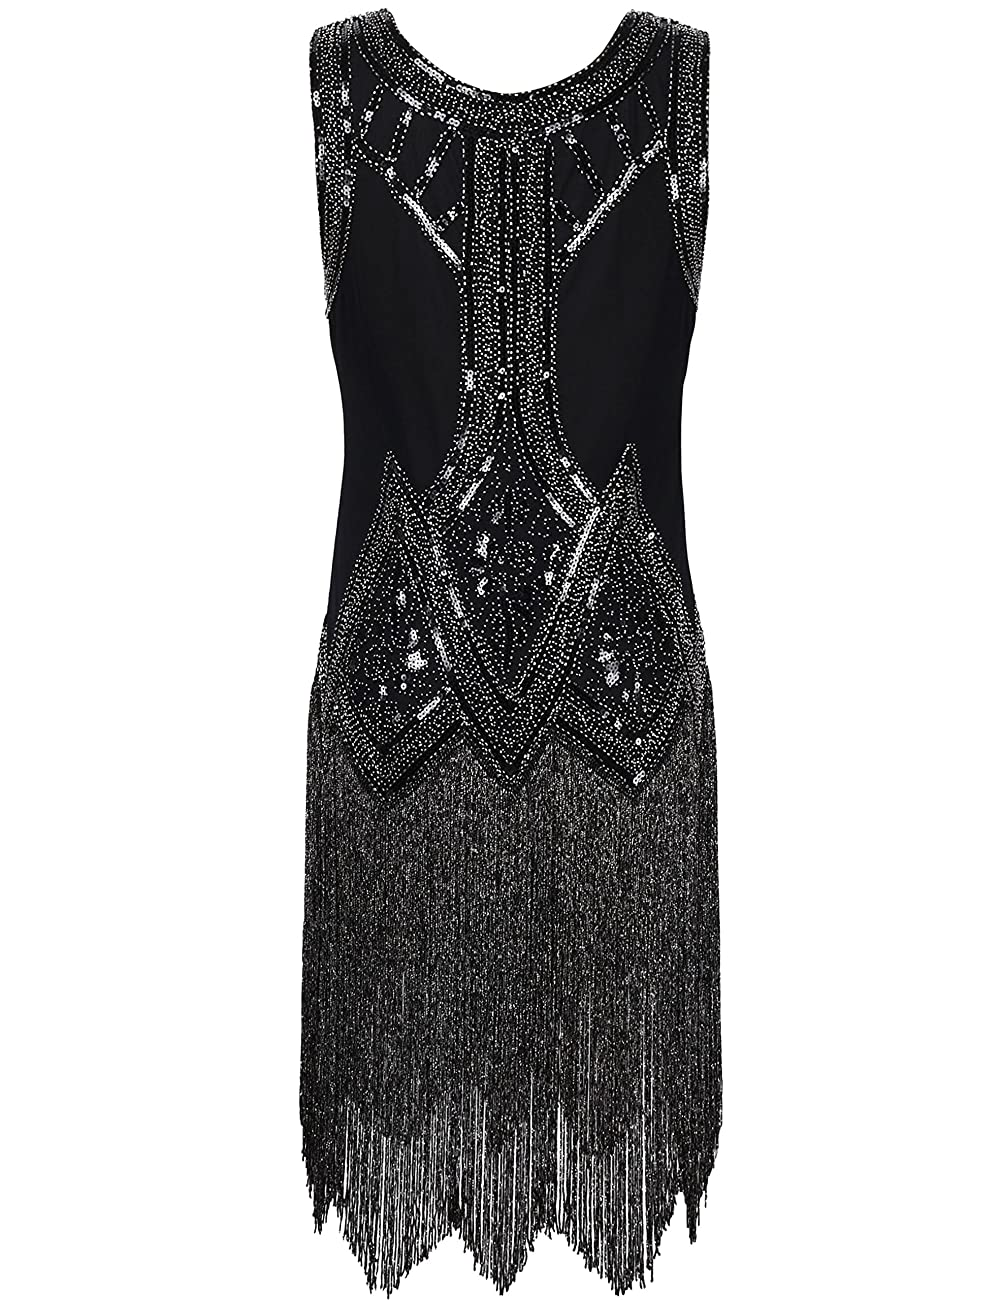 PrettyGuide Women's 1920s Vintage Beaded Fringed Inspired Black Flapper Dress 1